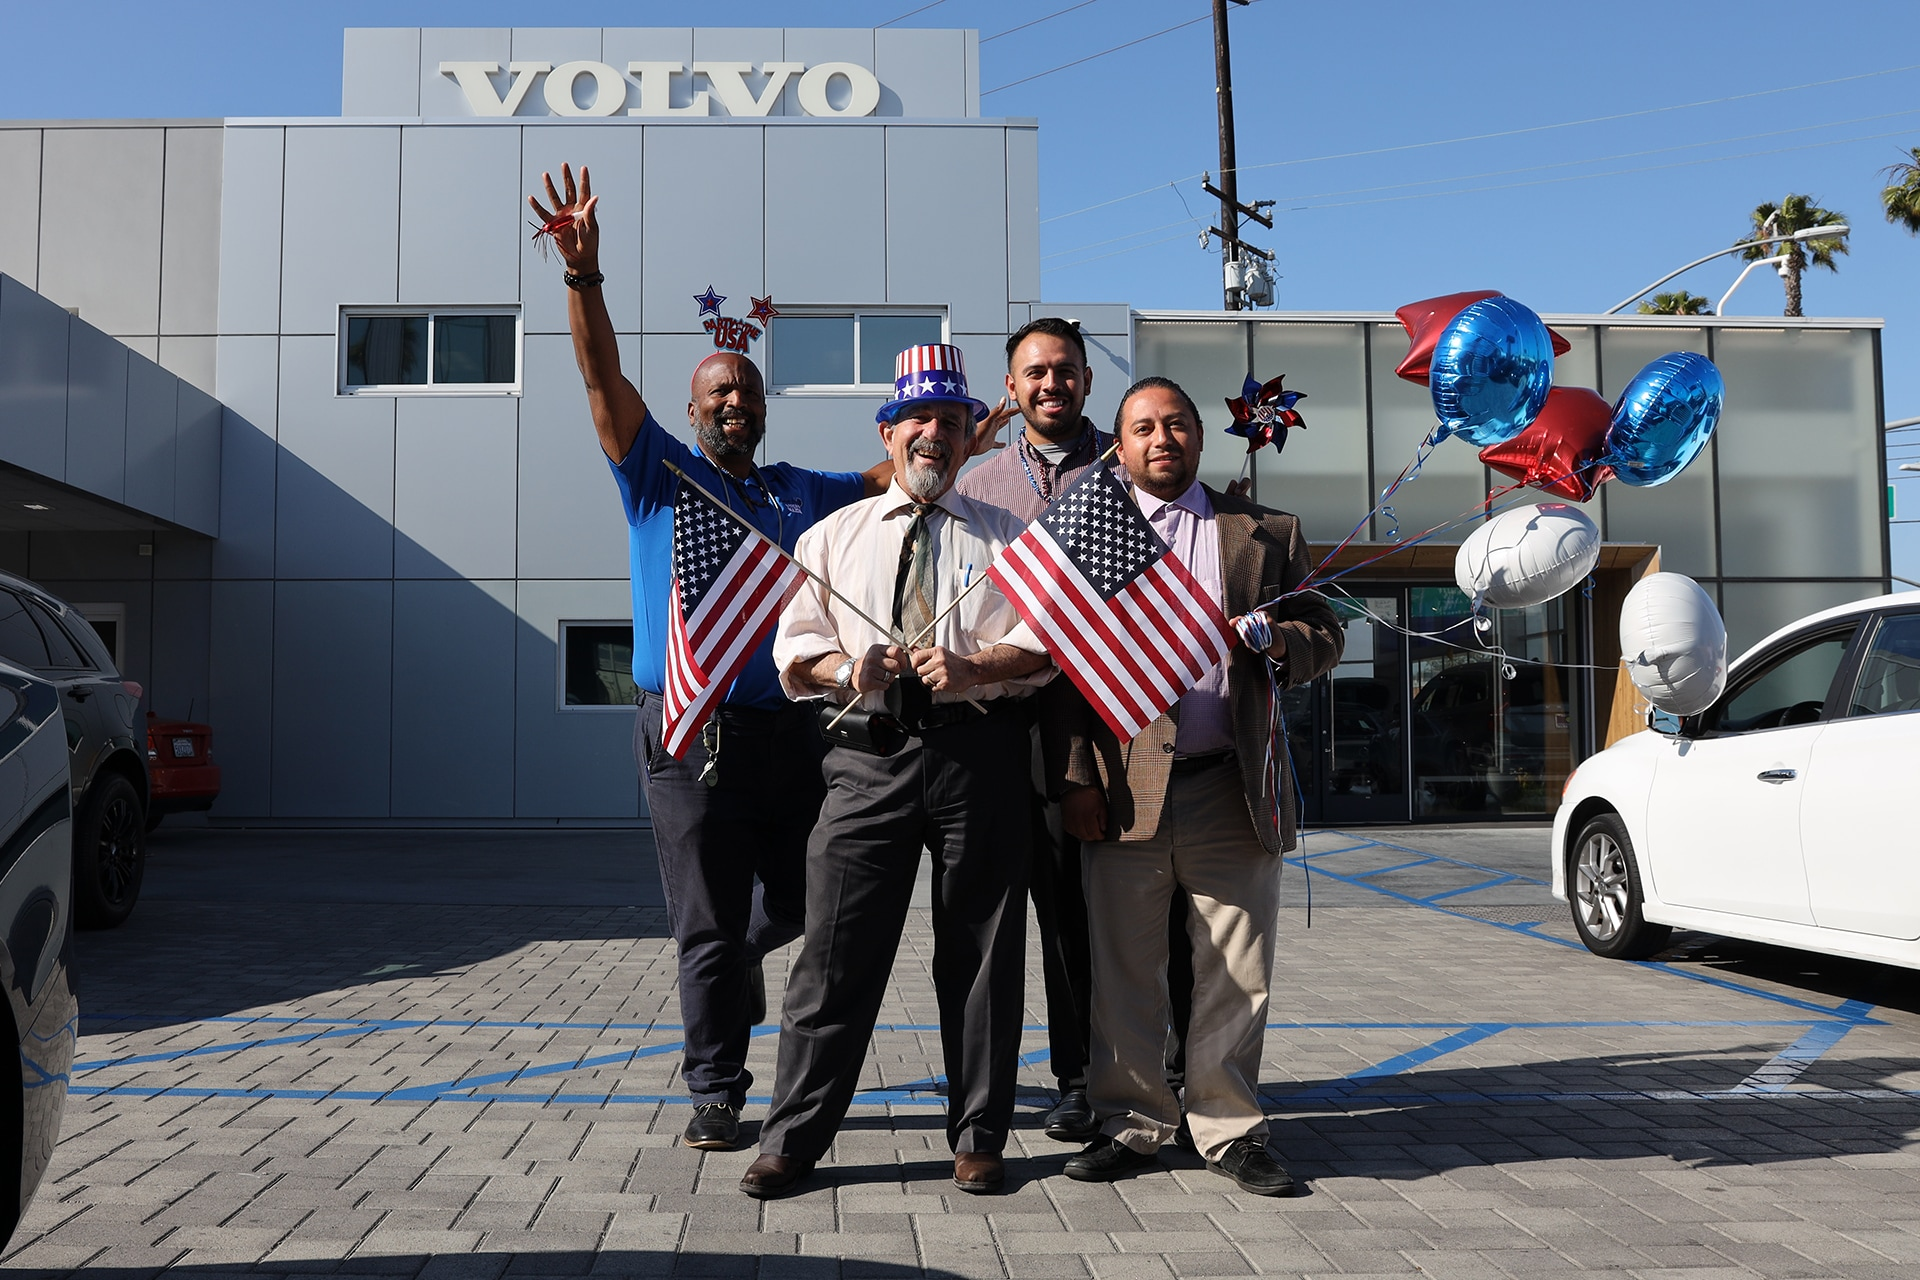 Culver City Volvo Cars has great sales people to help you